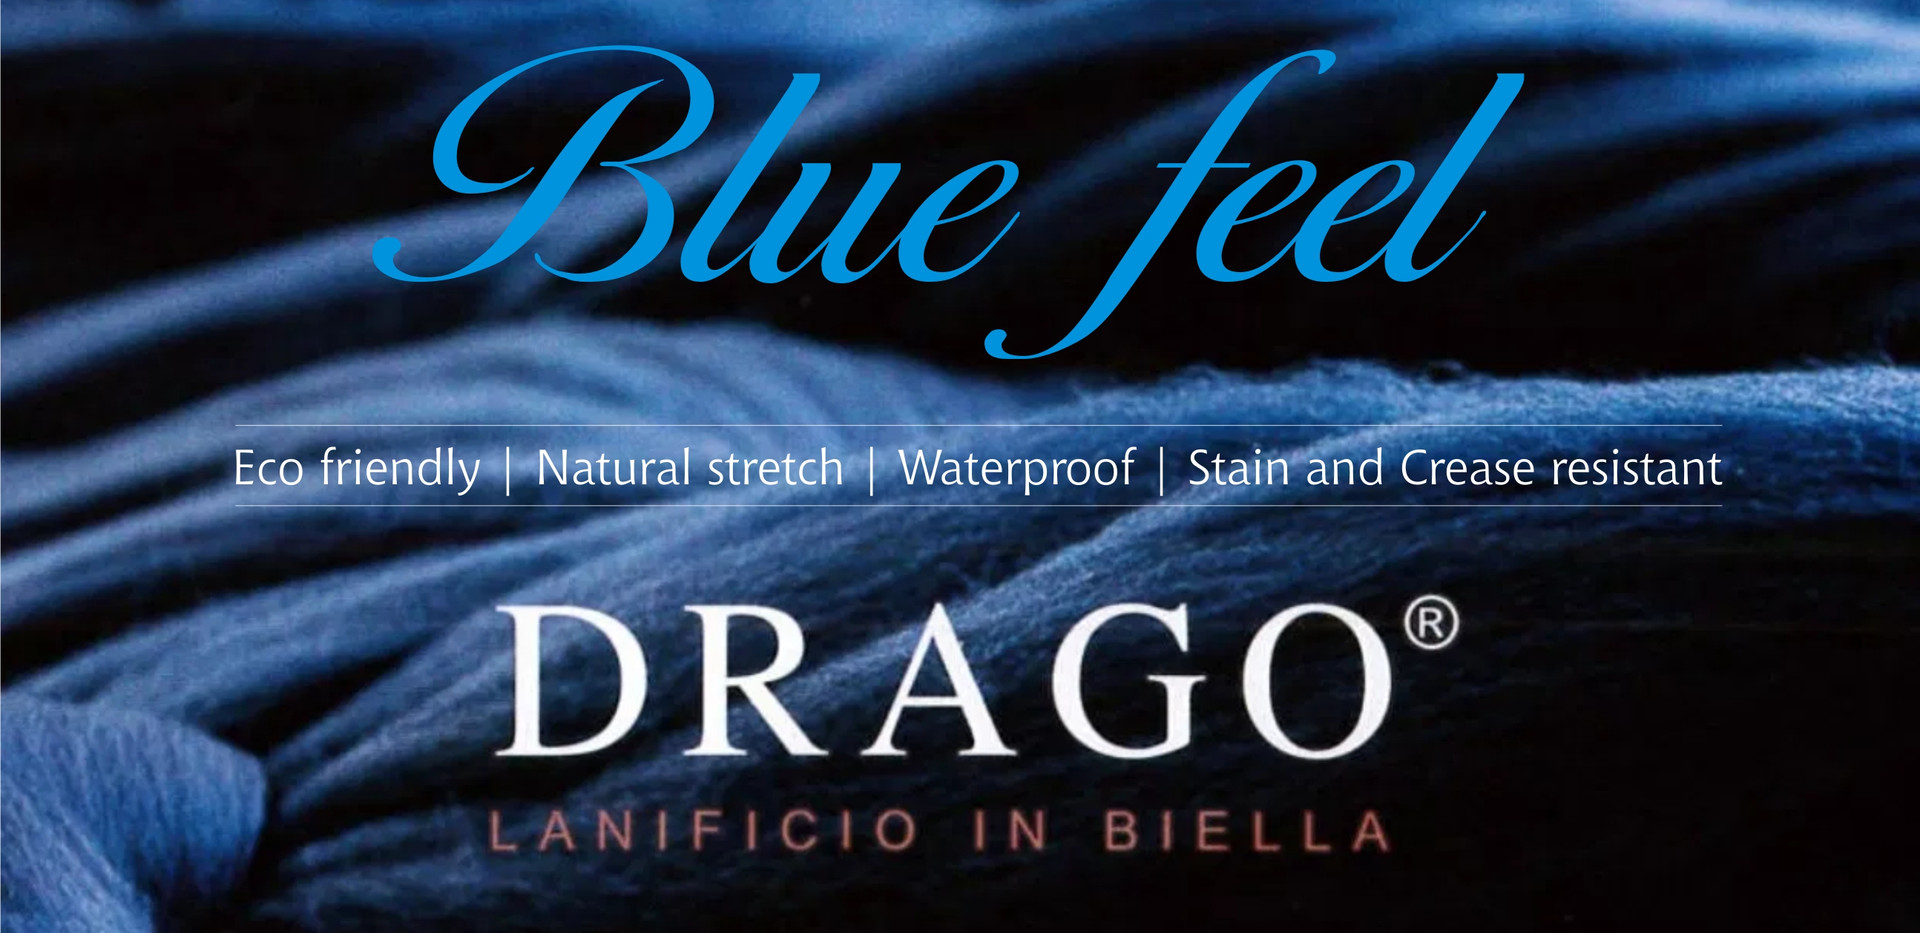 Drago Blue Feel Italian Fabrics